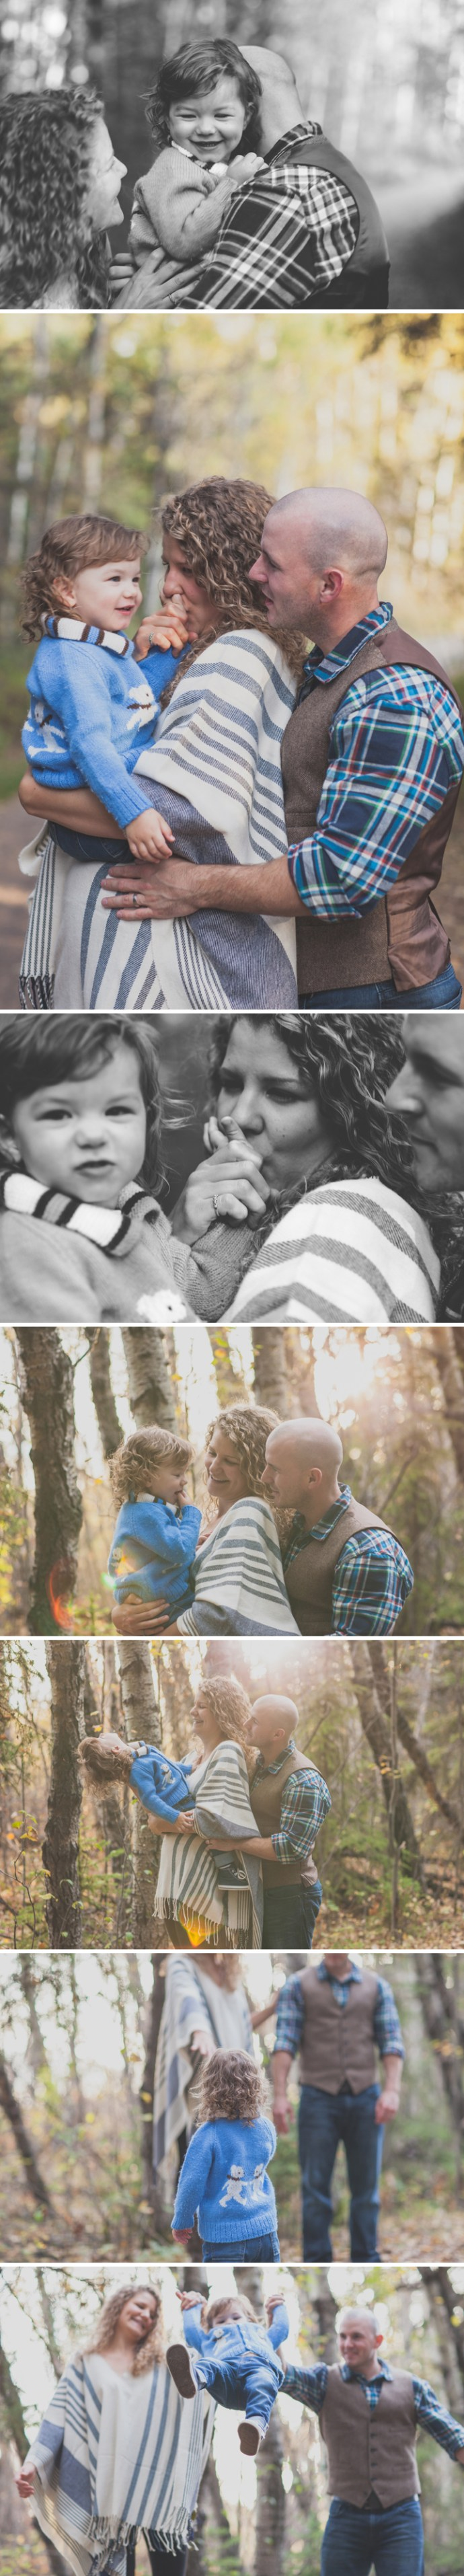 family photography | ©The Paper Deer Photography | thepaperdeer.ca